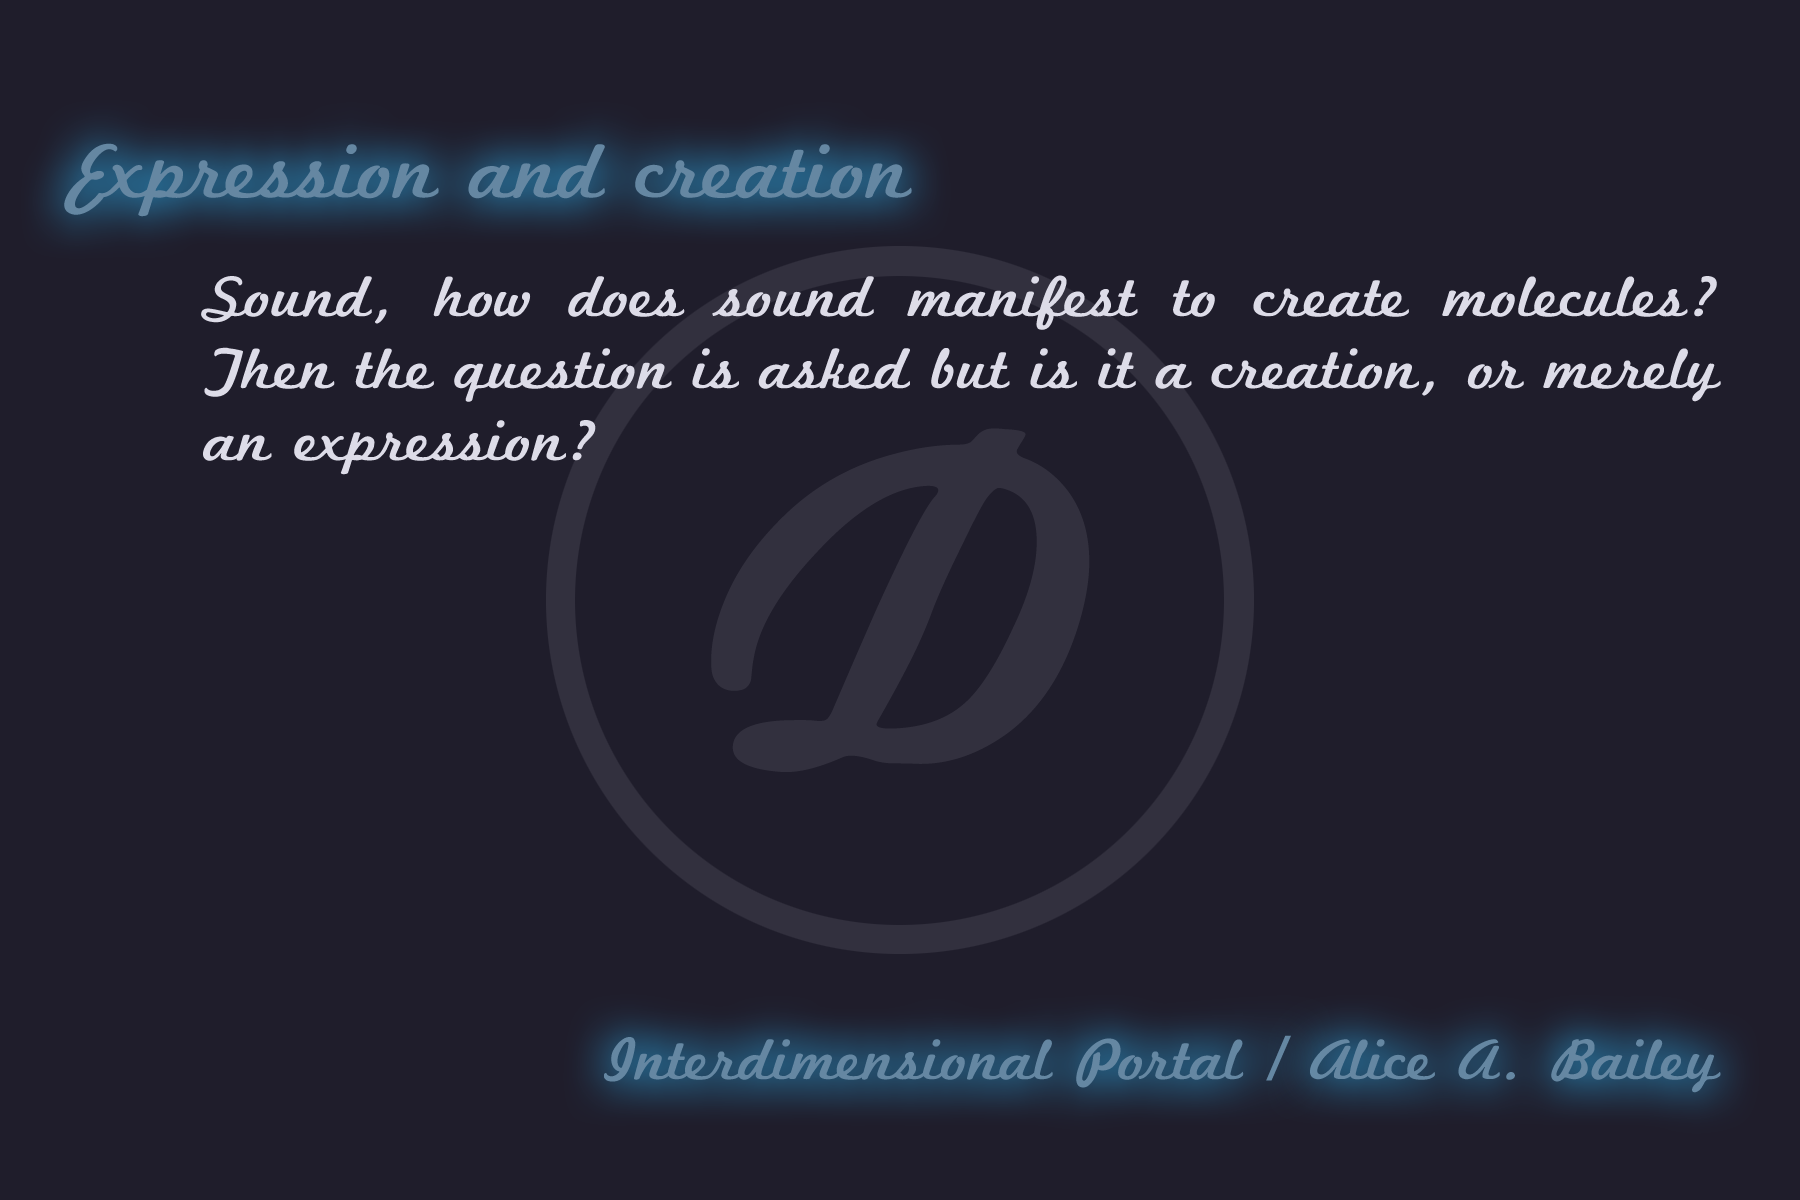 """""""Sound, how does sound manifest to create molecules? Then the question is asked but is it a creation, or merely an expression?"""" is a part taken from an article that was written by Alice A. Bailey through the Interdimensional Portal at Desteni."""